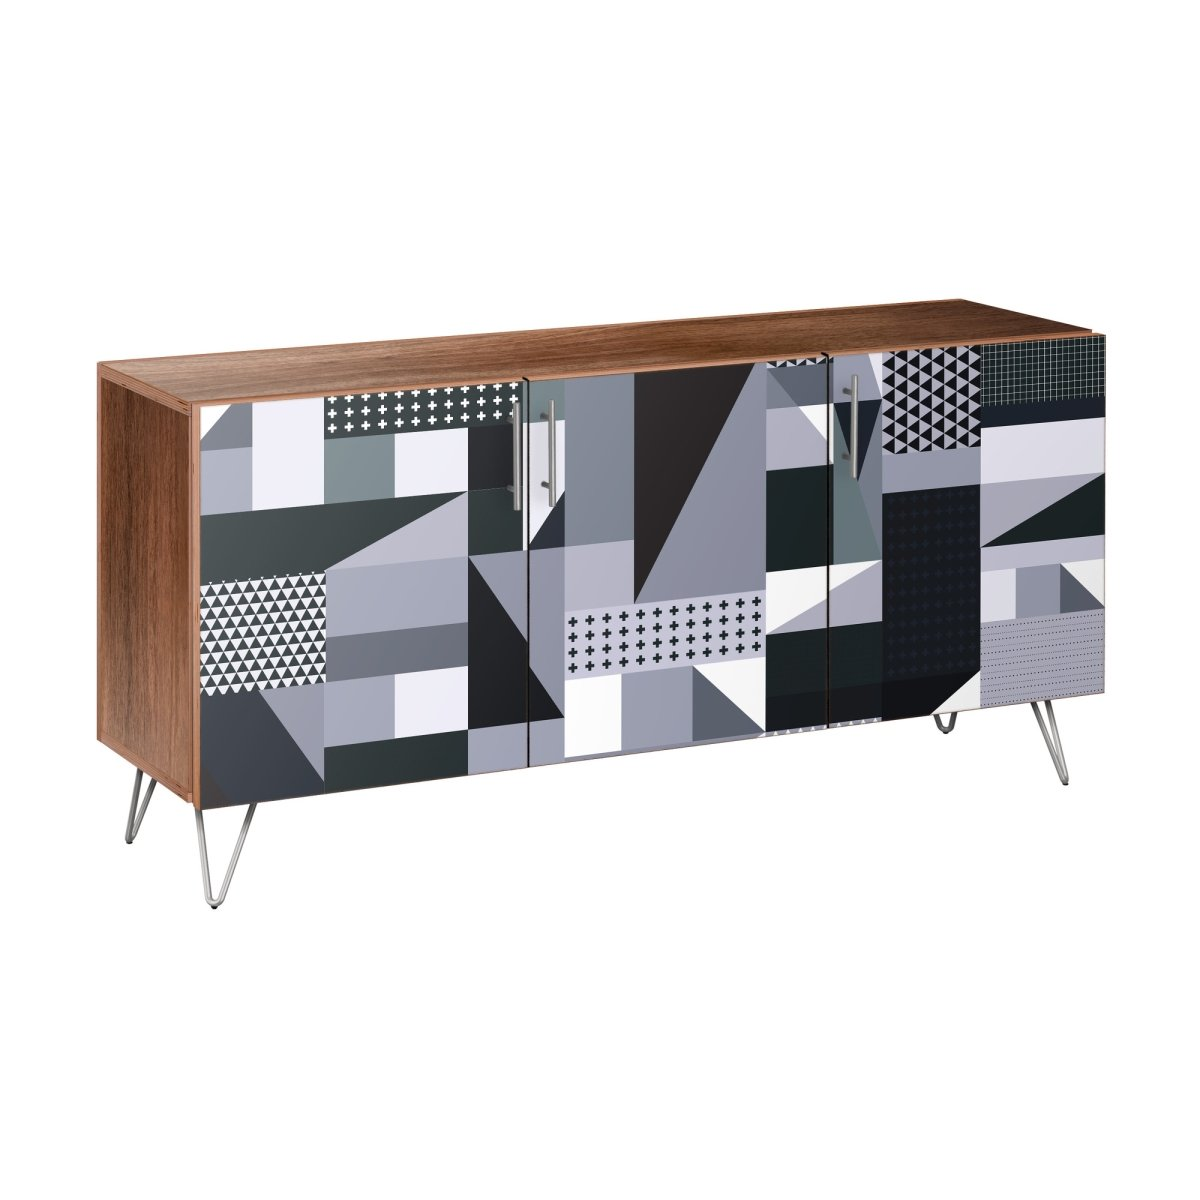 NyeKoncept 13006385 Grayscale Patchwork Hairpin Sideboard44; Walnut & Chrome by NyeKoncept